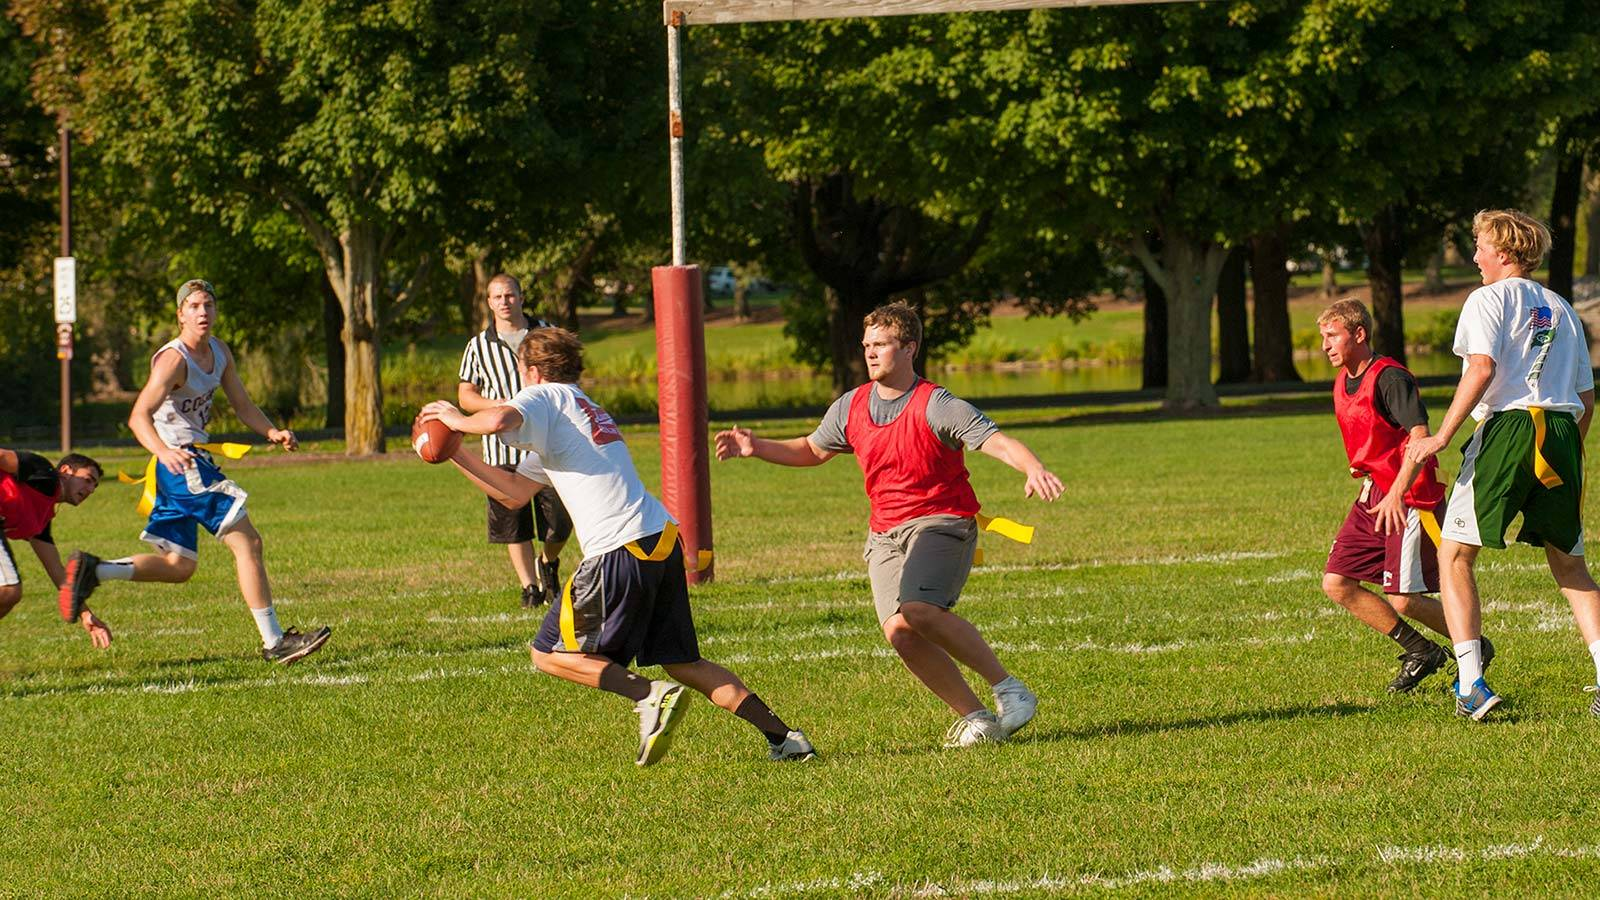 A student official watches a play unfold in intramural flag football